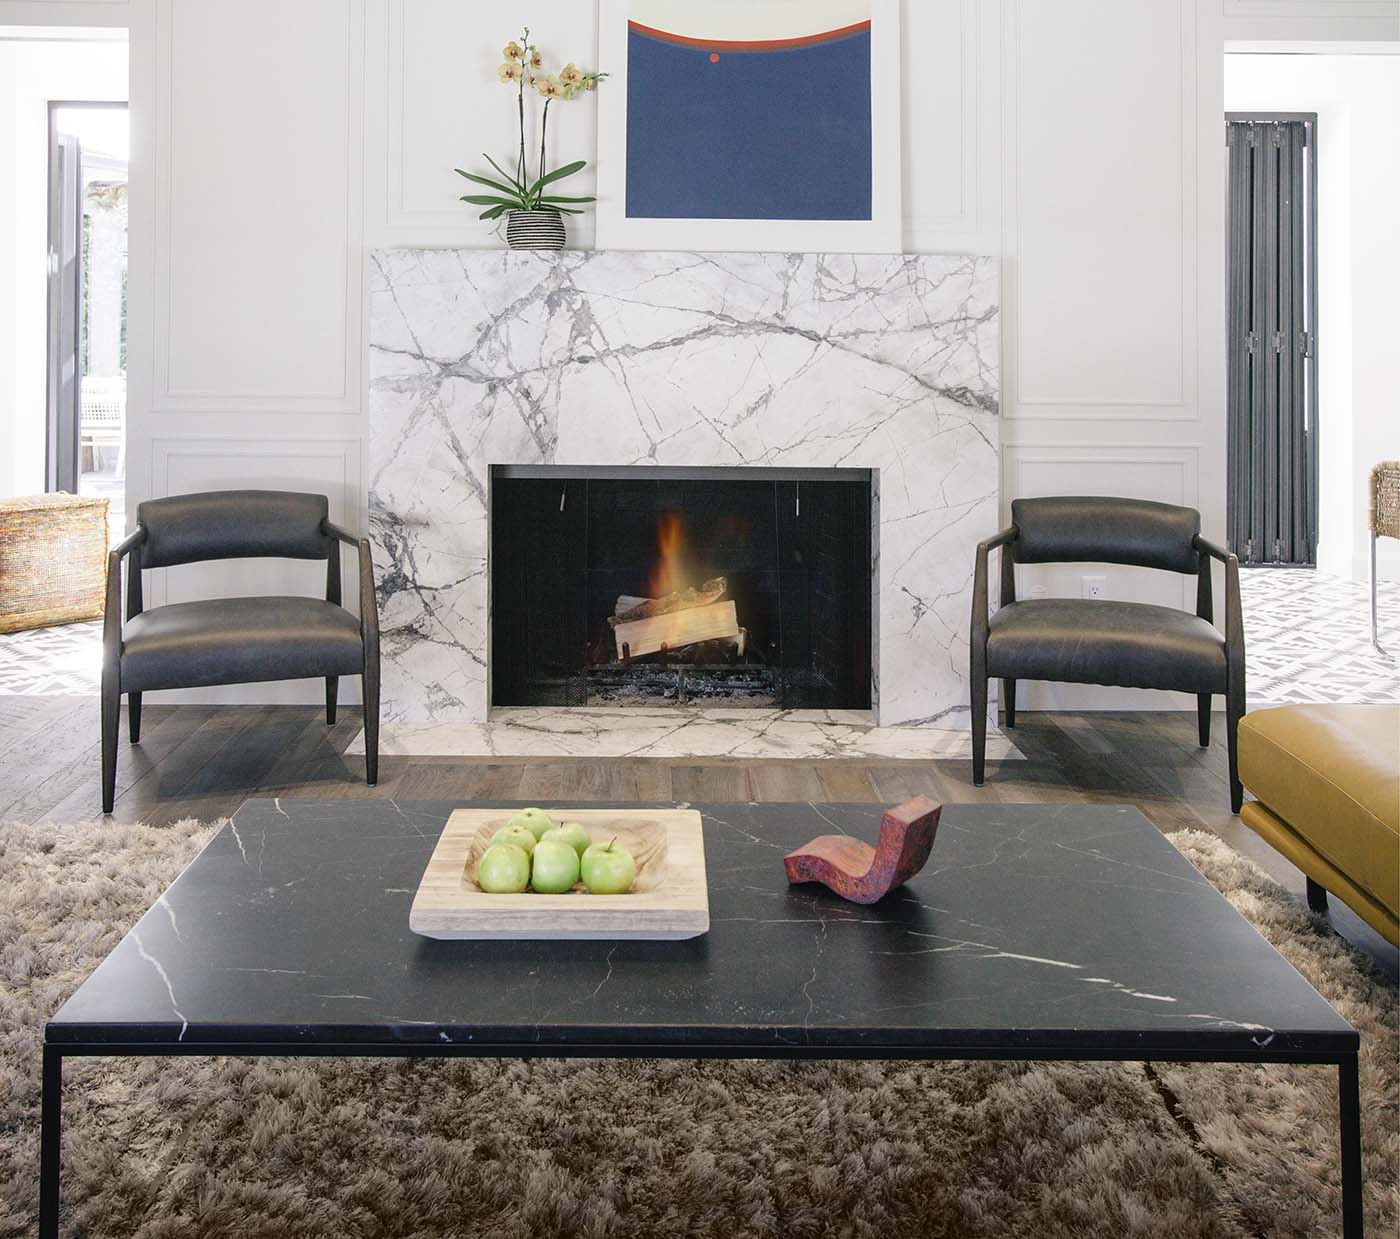 Living room with firepit, chairs and black table